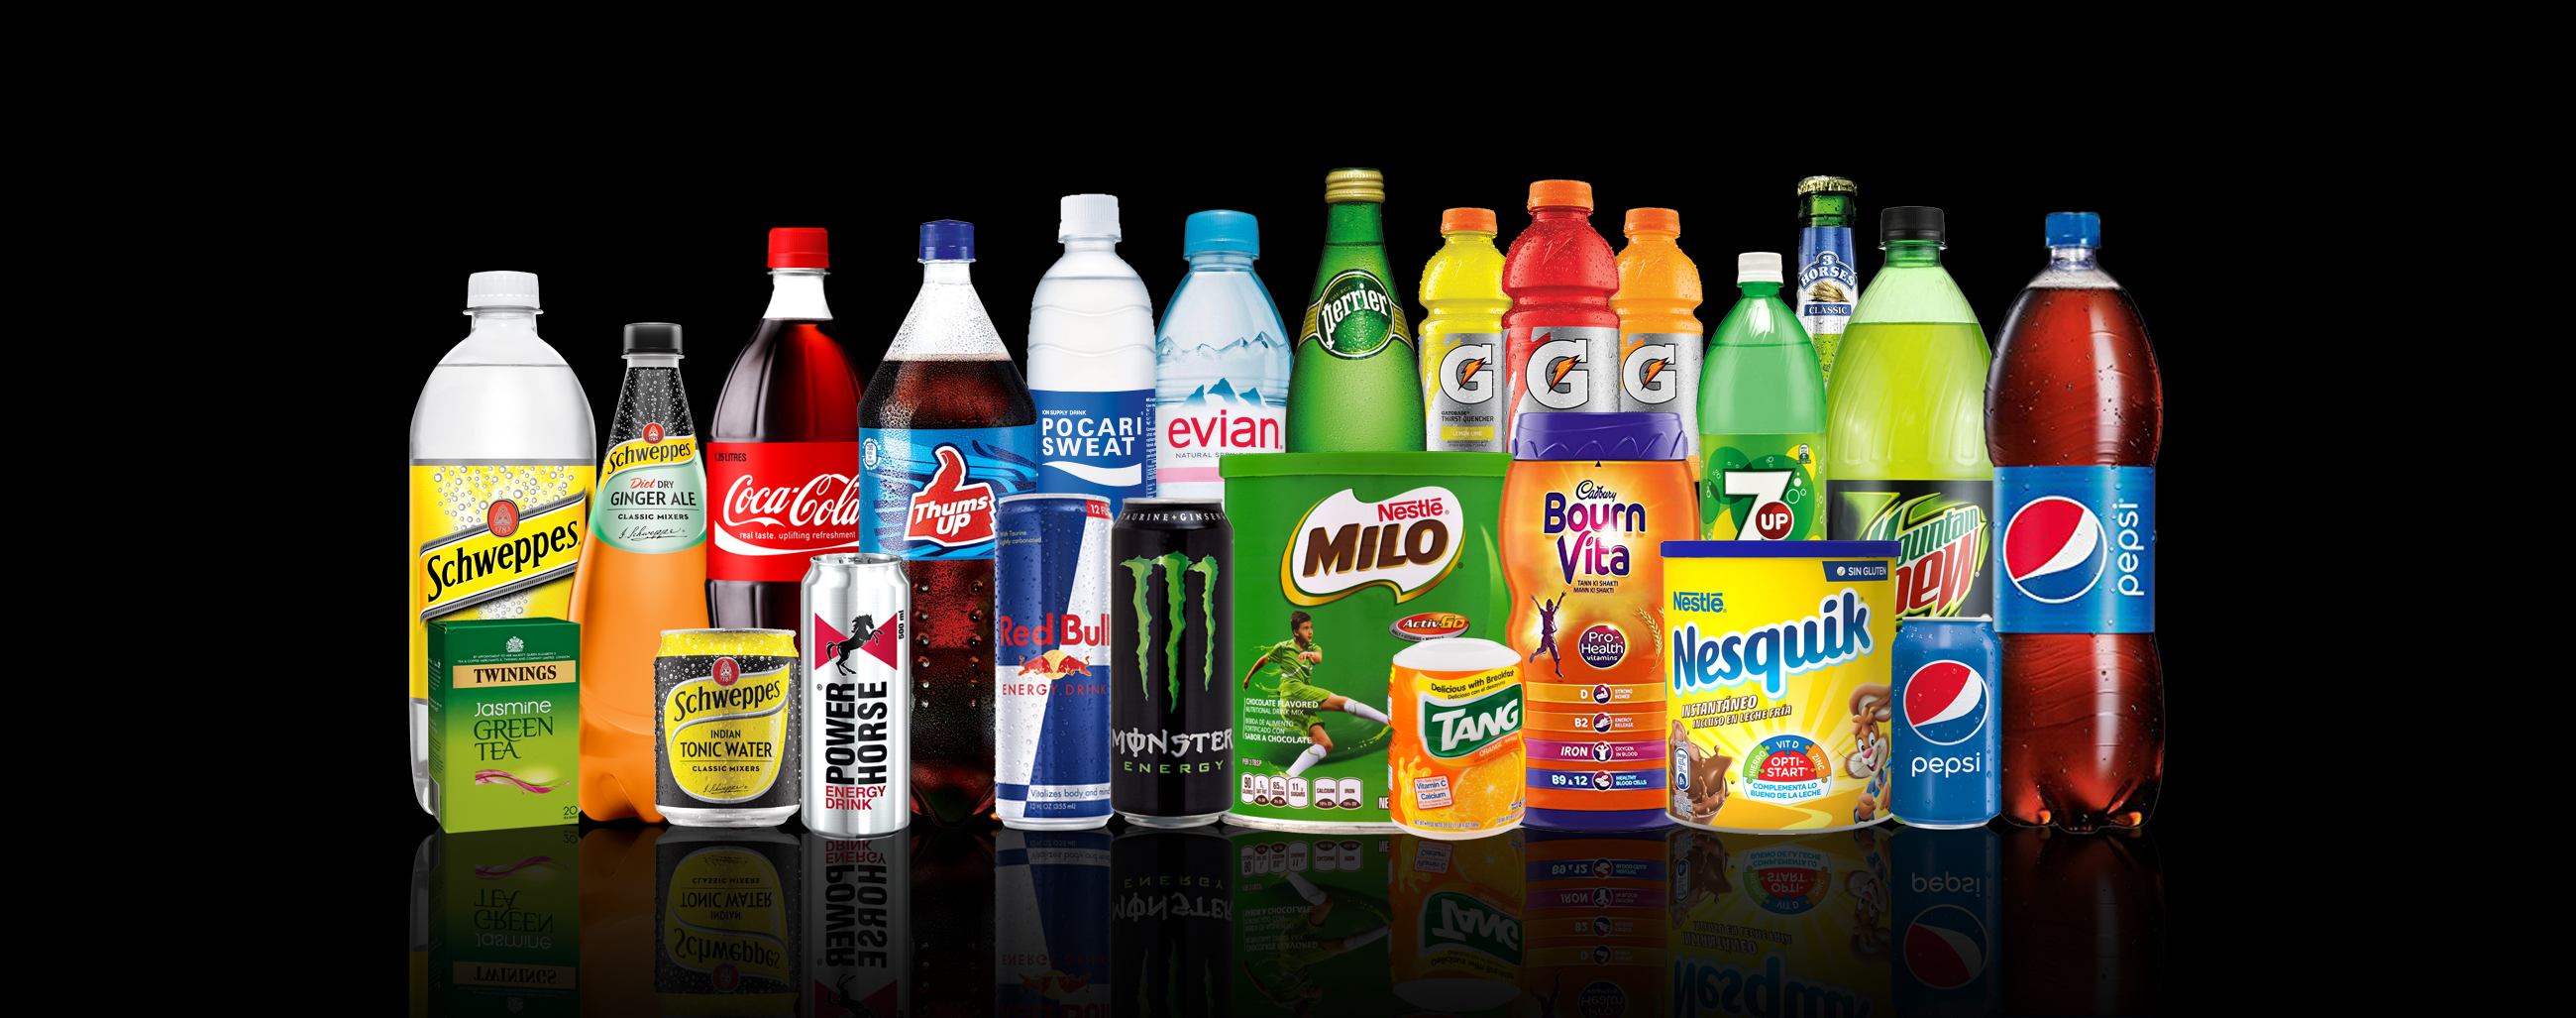 Beverages Importer & Distributor Dubai